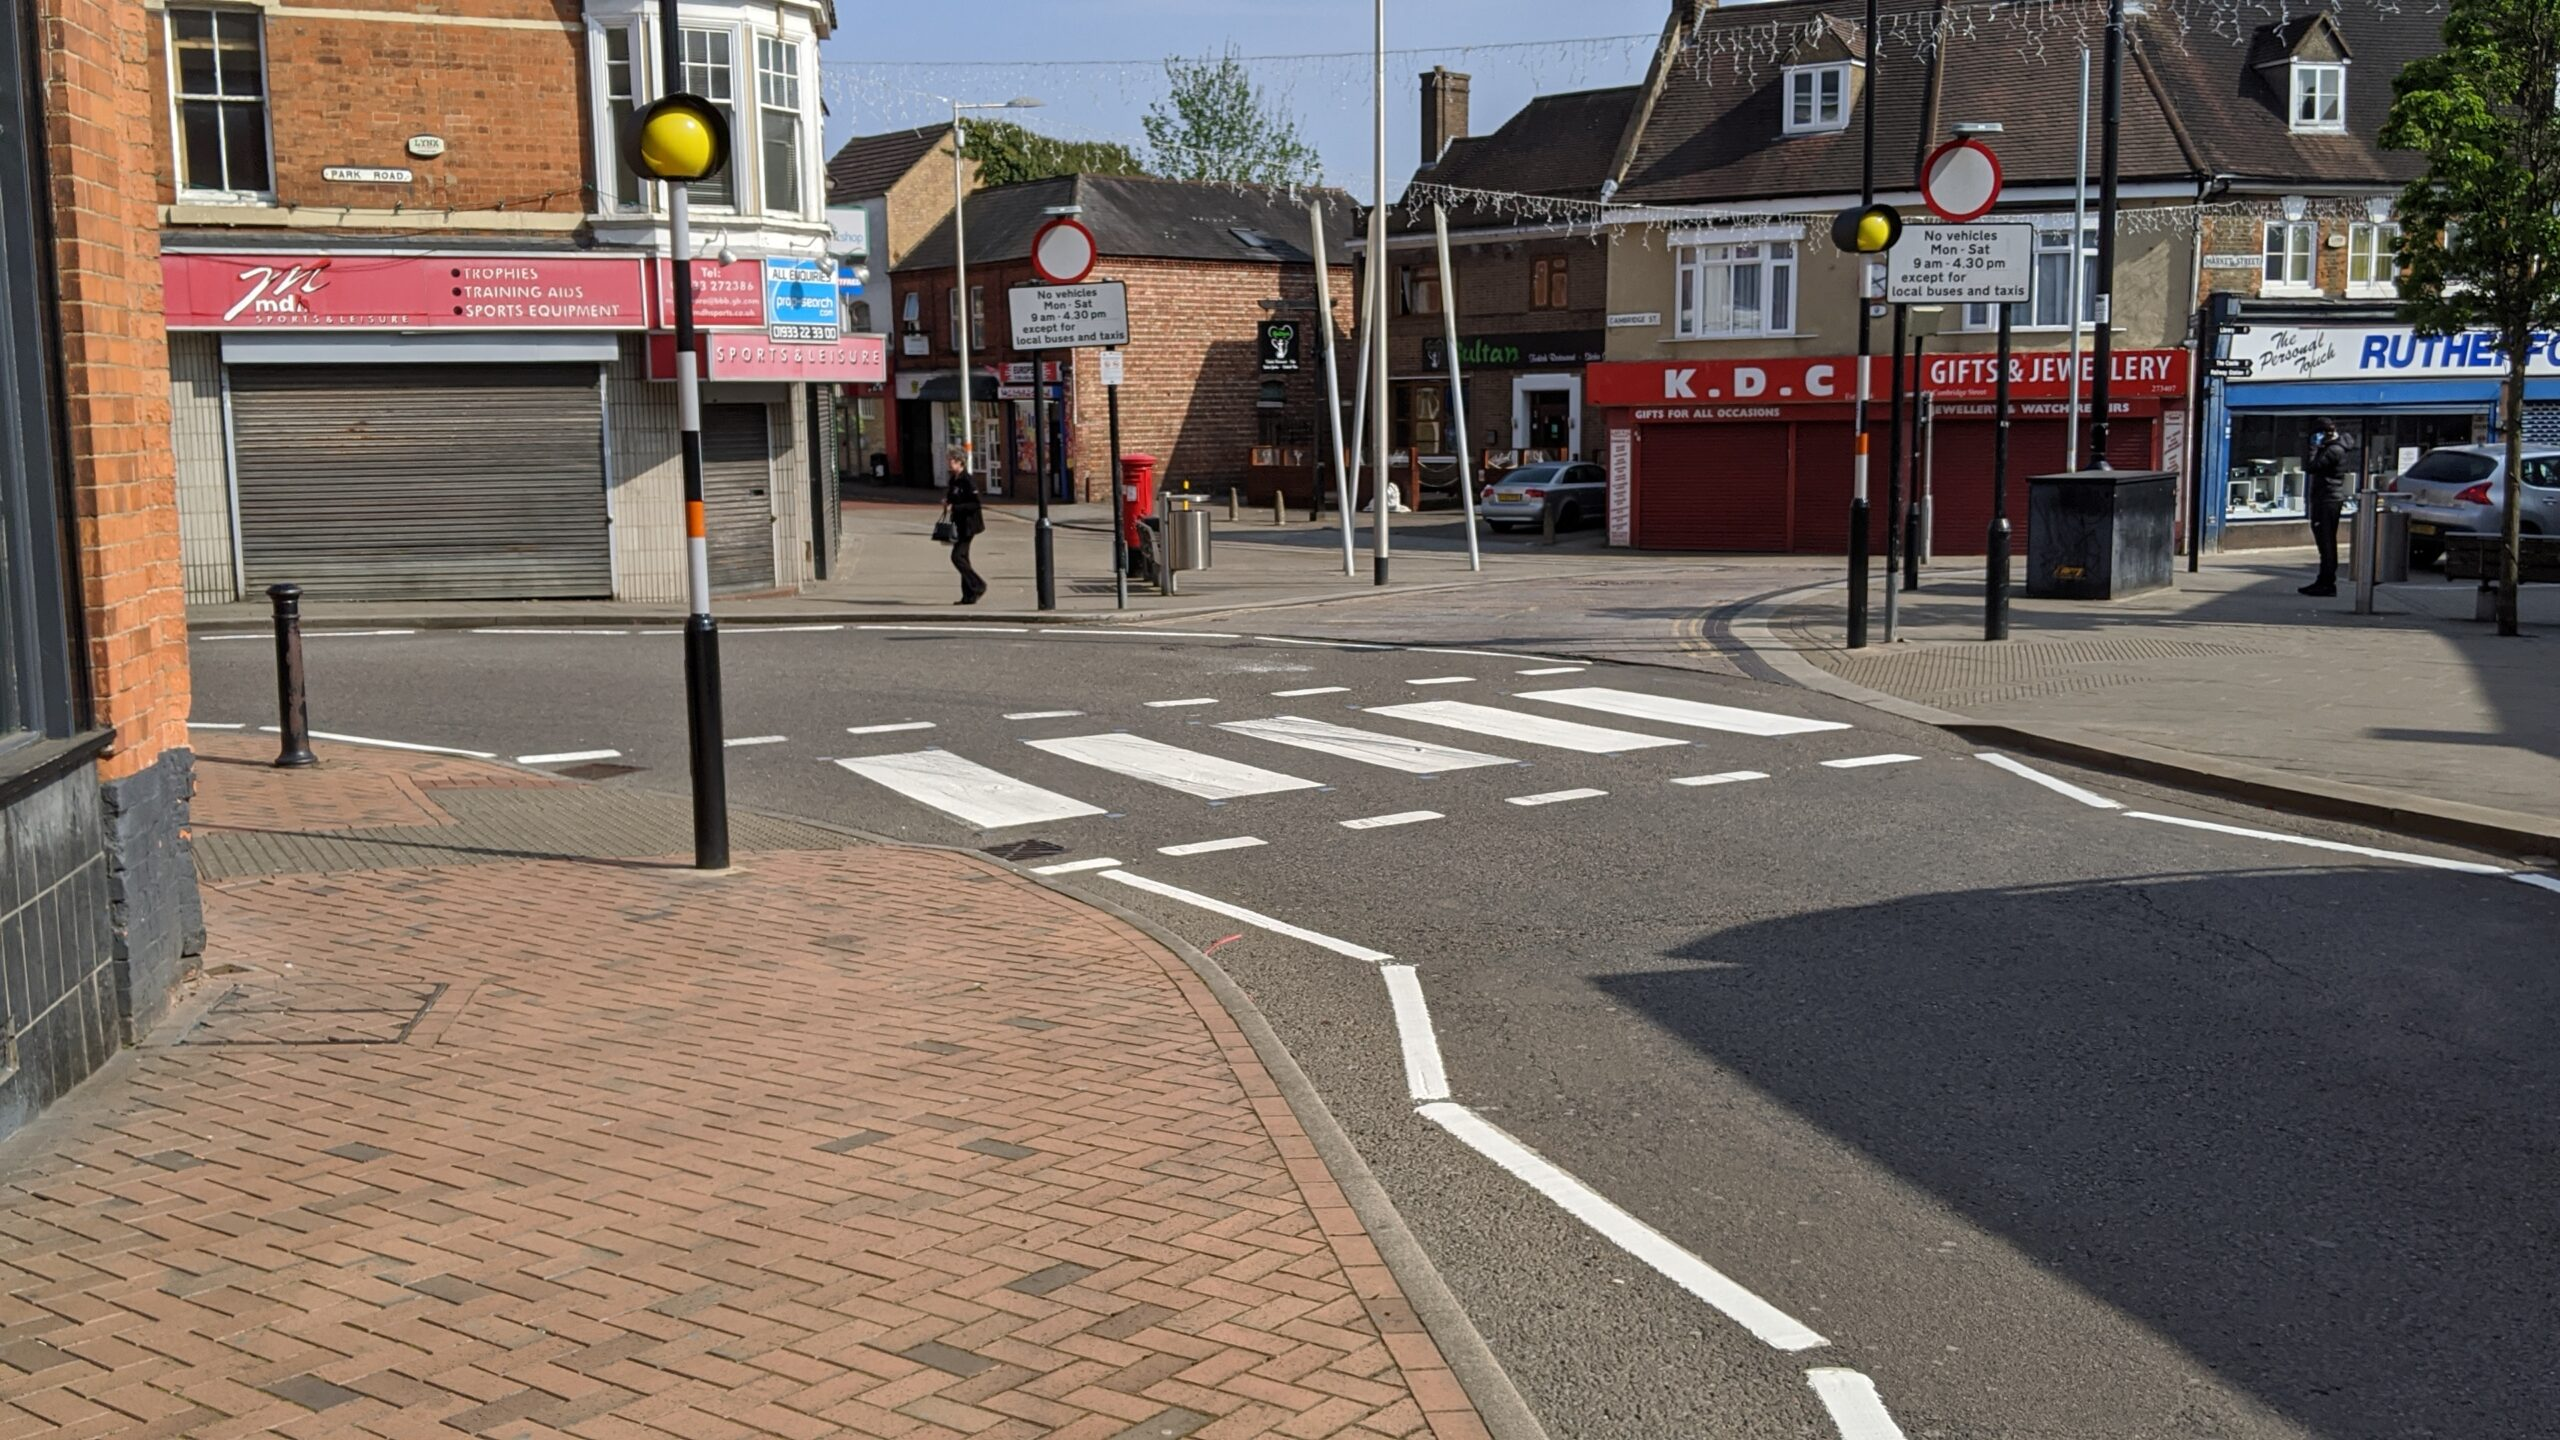 Repainted zebra crossing - April 20202